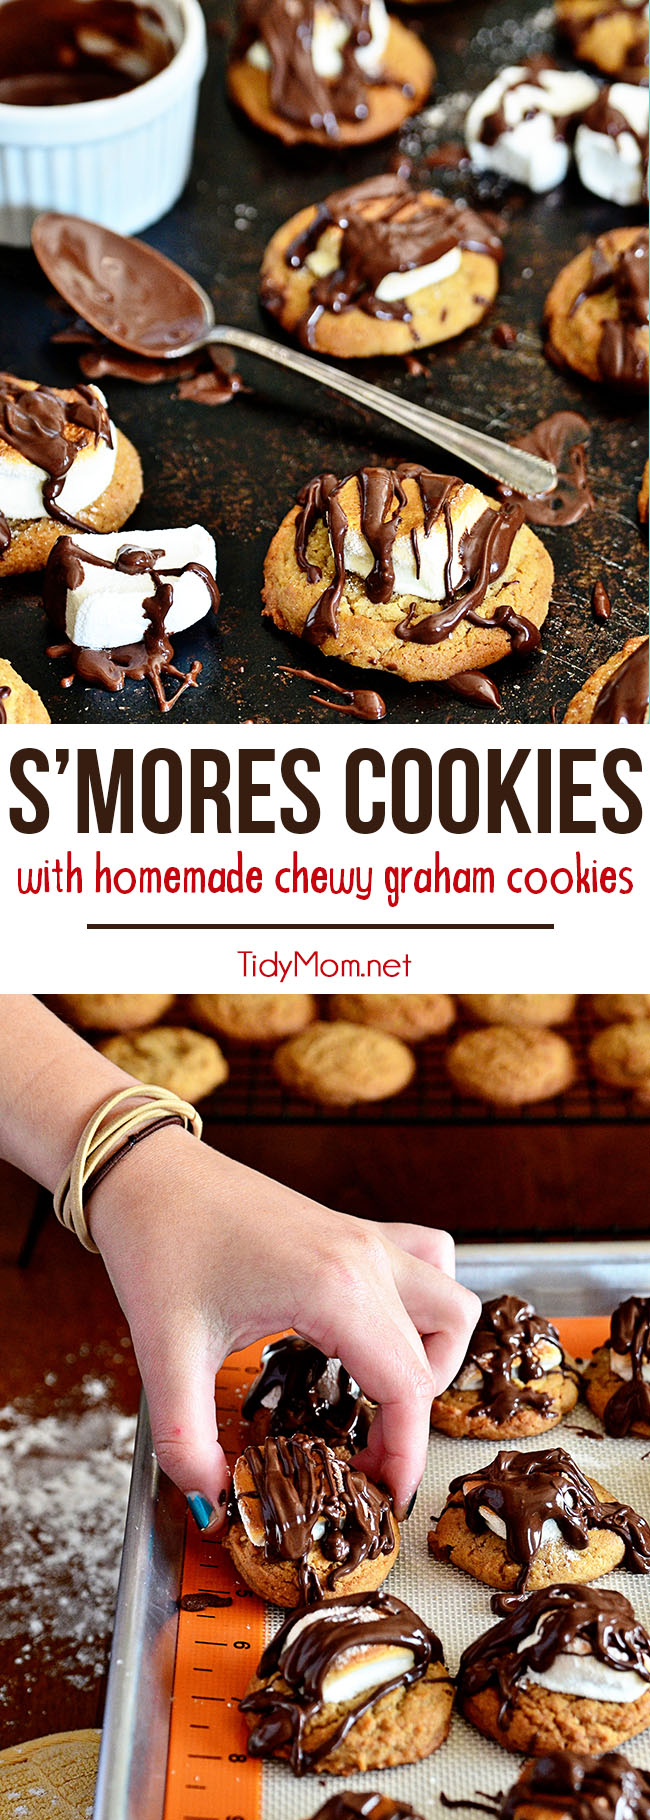 Take a homemade chewy graham cookie, top it with toasted marshmallow and crown it with a drizzle of chocolate and you have a fun twist on the classic campfire treat. S'mores Cookies printable recipe at TidyMom.net